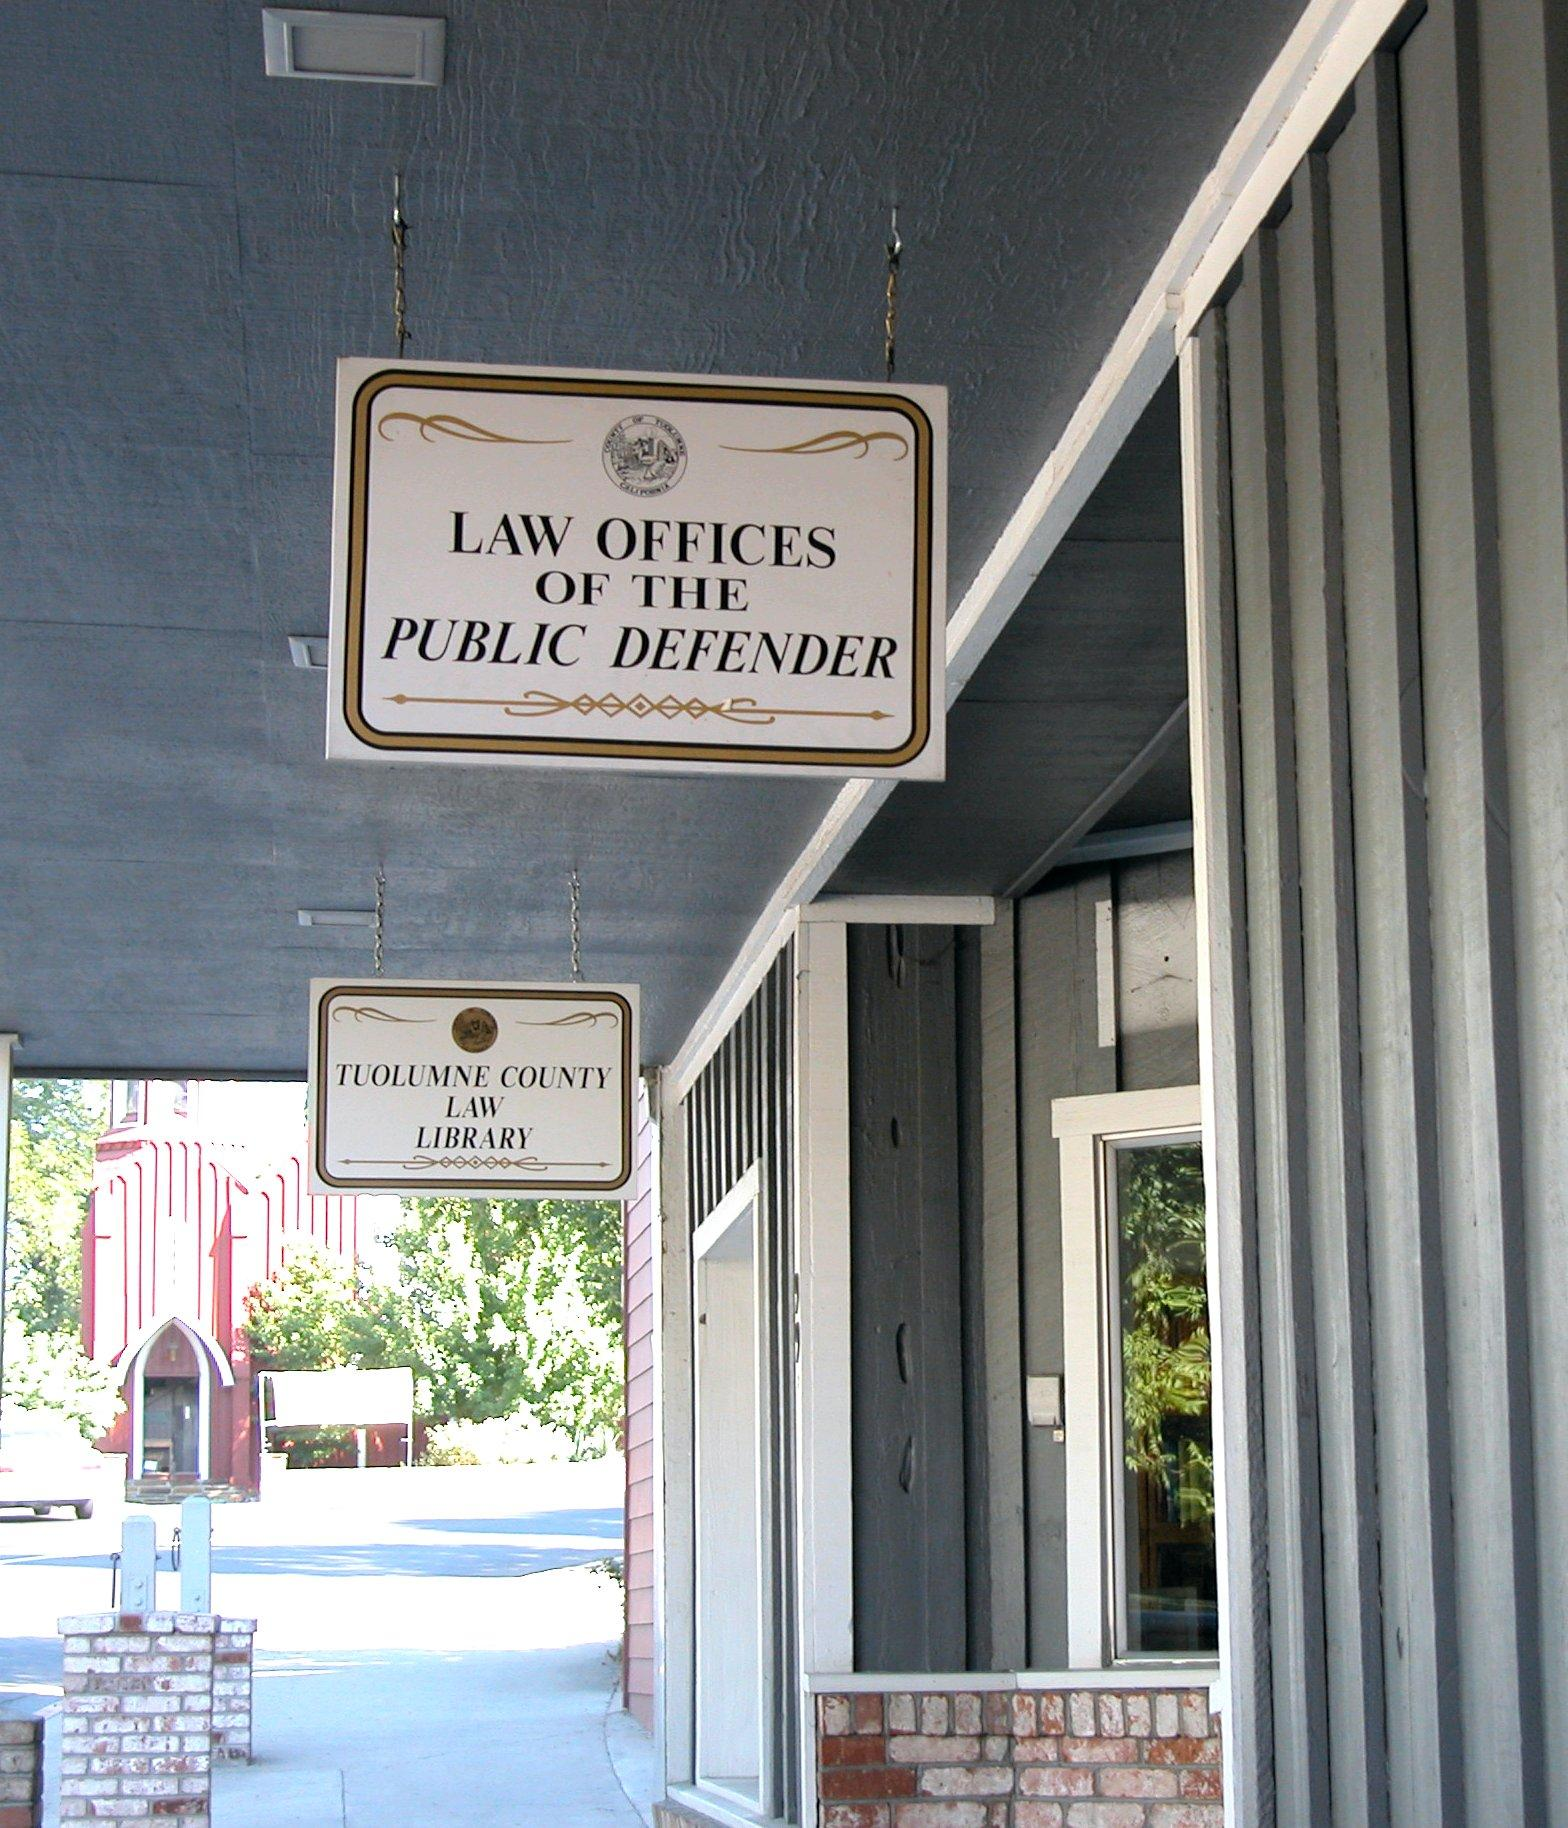 Law Offices of the Public Defender